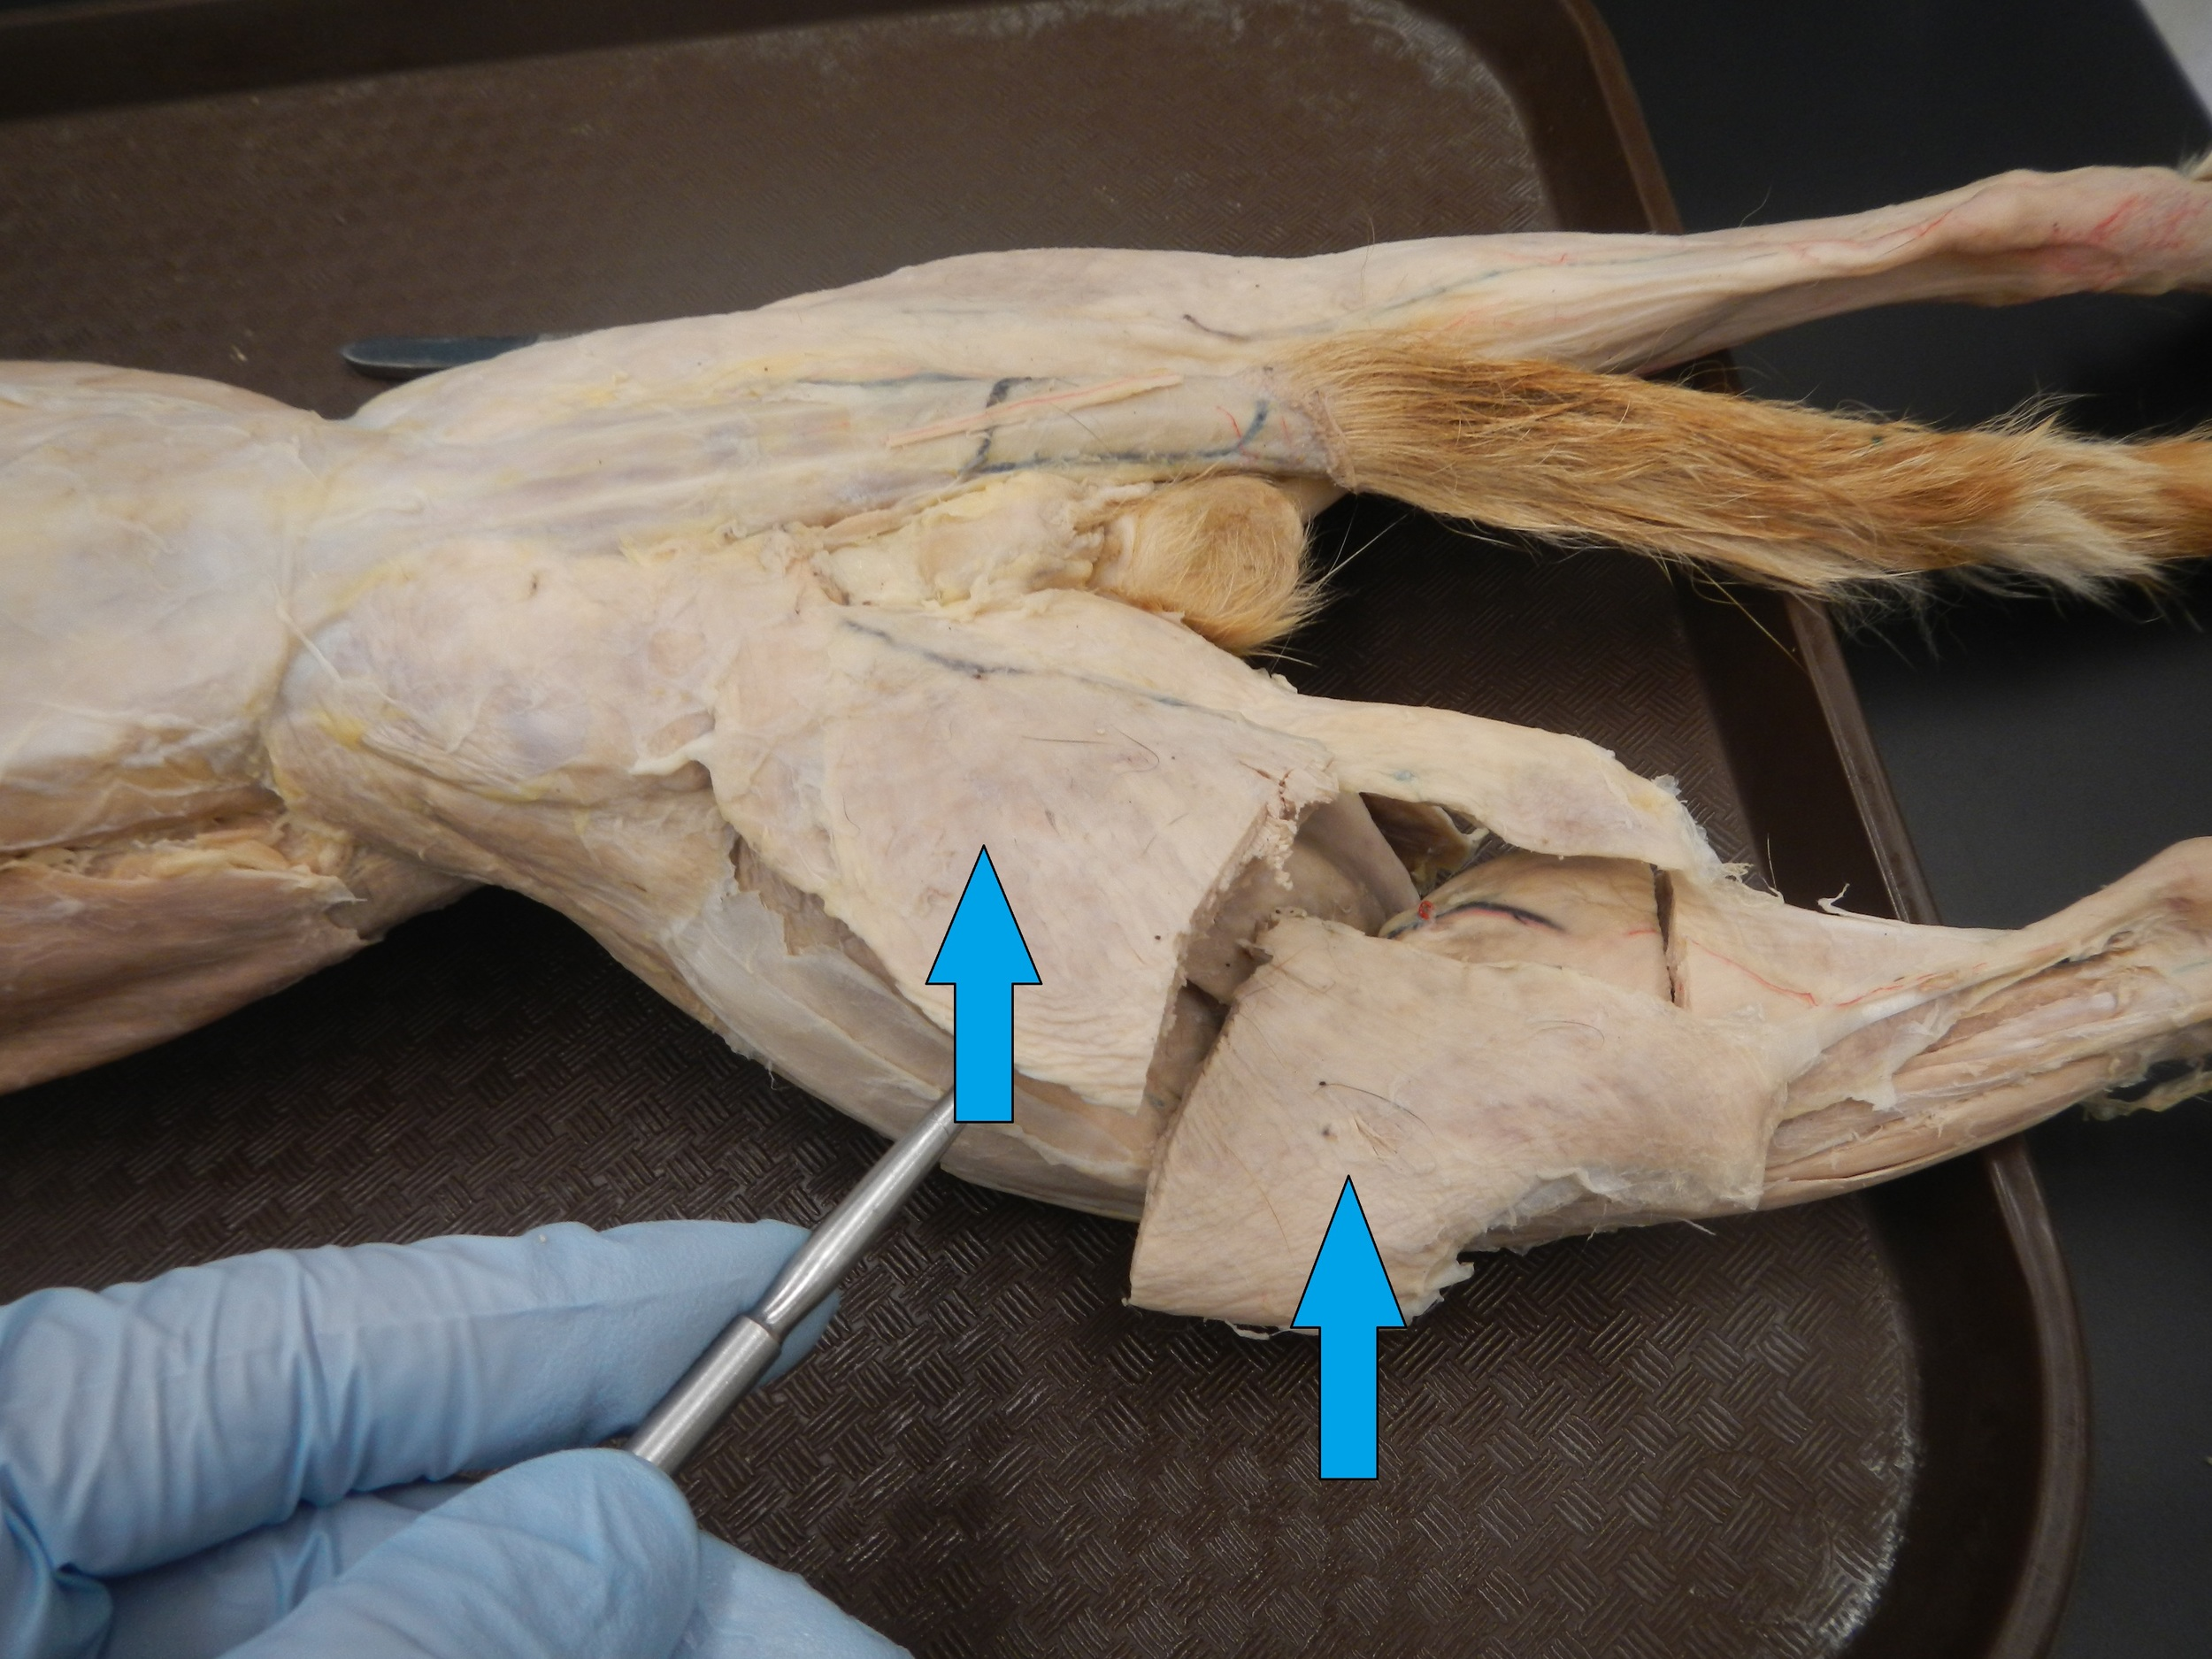 Biceps Femoris    O - Ischial tuberosity (Long Head), Posterior lateral side of femur (Short Head)  I - Head offibulaand lateral condyle oftibia   F - Long head extends hip and flexes knee, Short head flexes knee